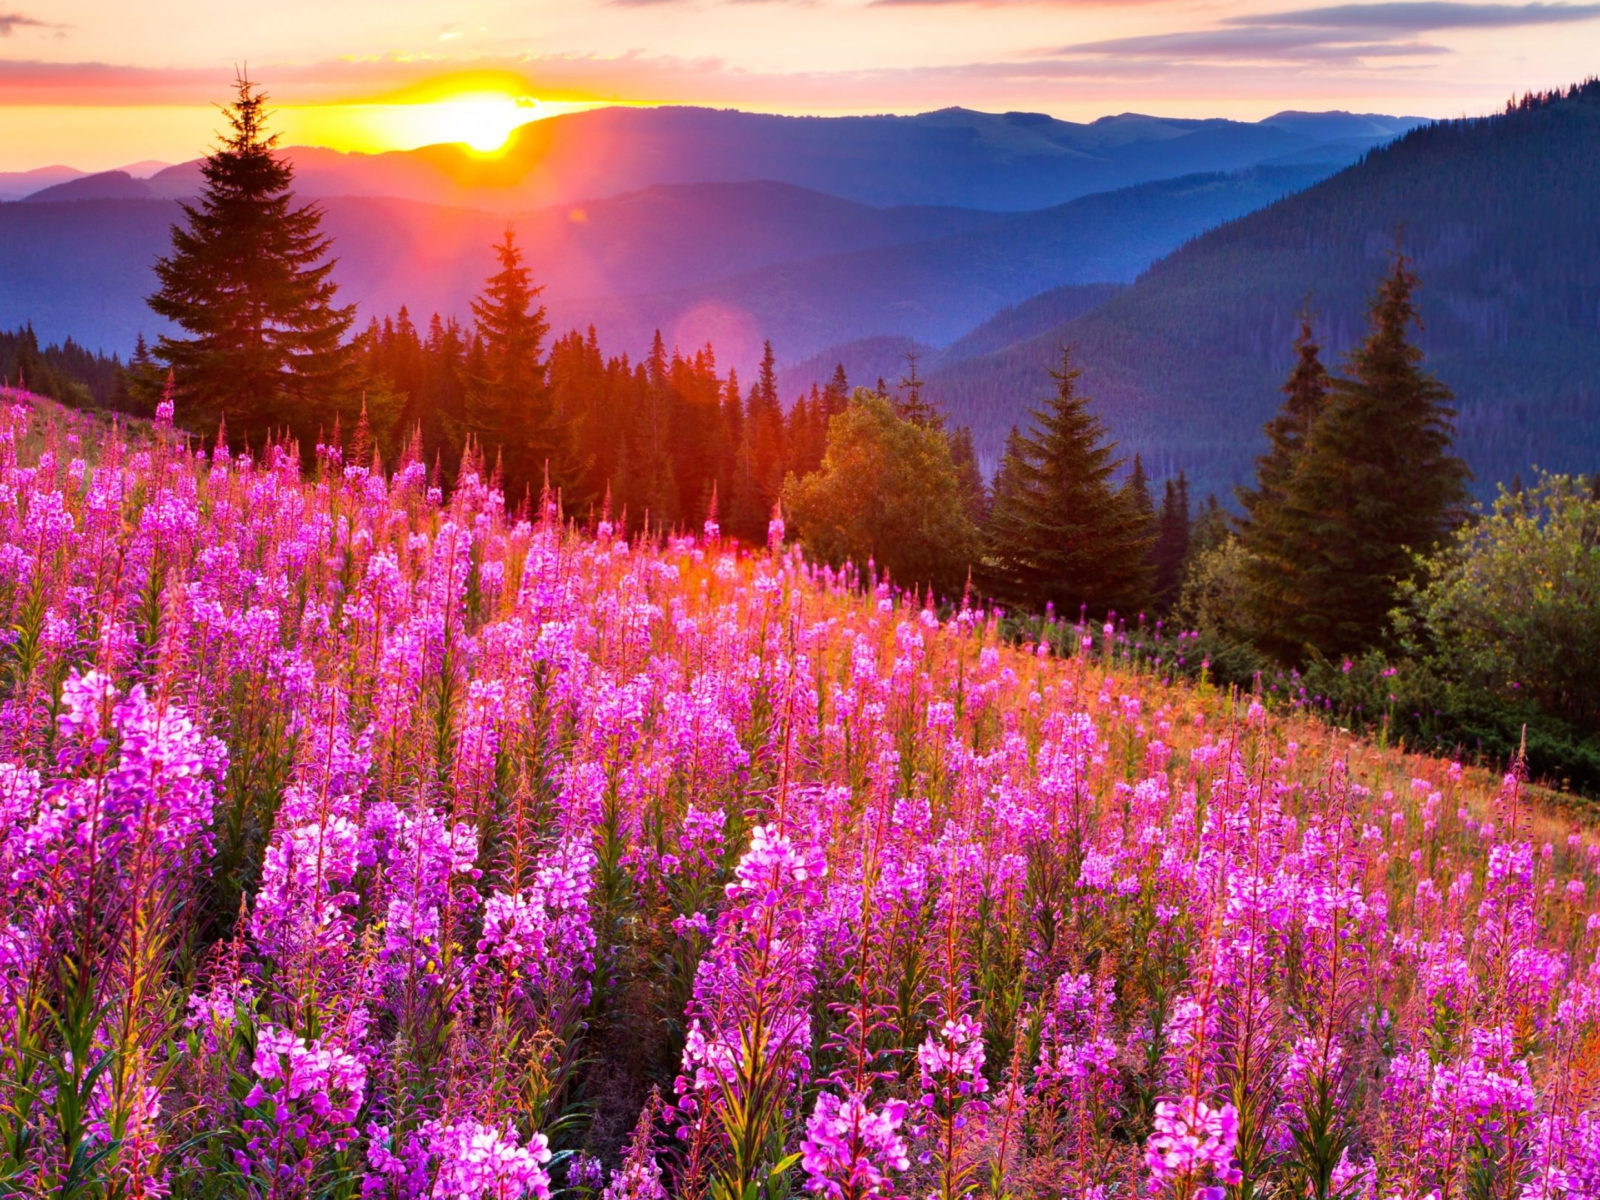 Ipad Wallpaper Hd Free Sunsets Mountain Mow Lupine Pink Flowers Summer Landscape